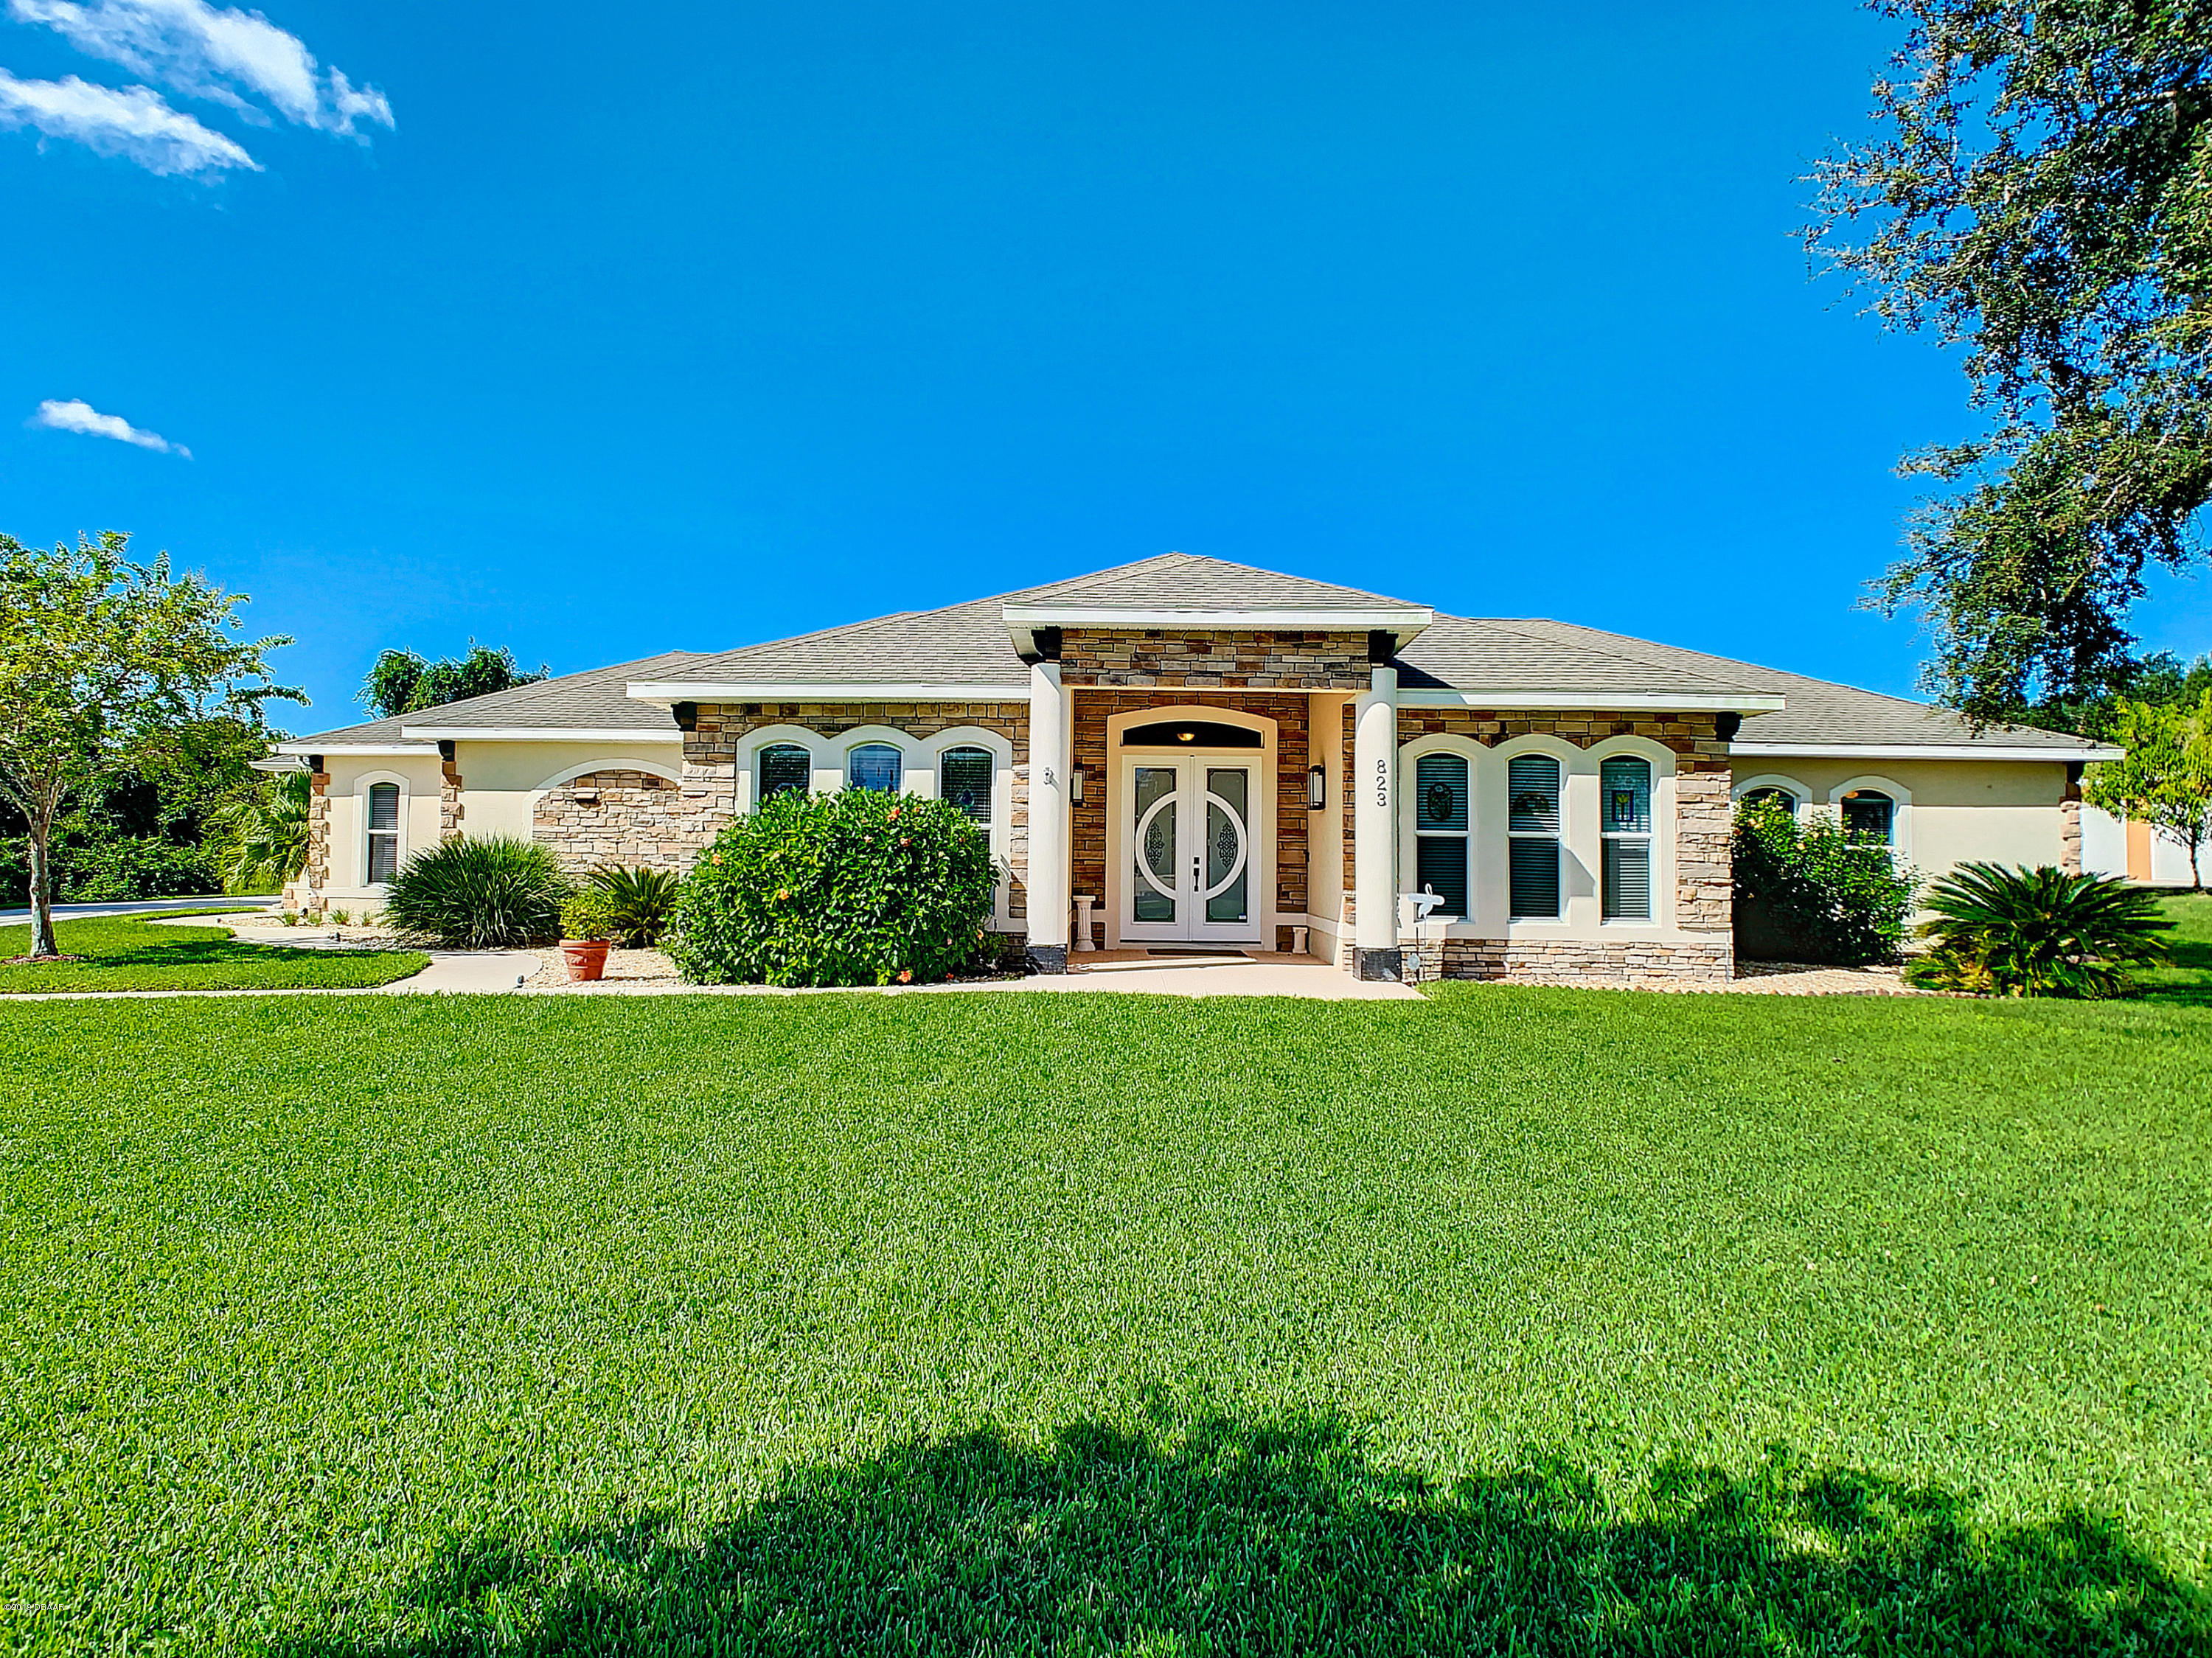 823 W Pheasant Run Court, Ponce Inlet, Florida